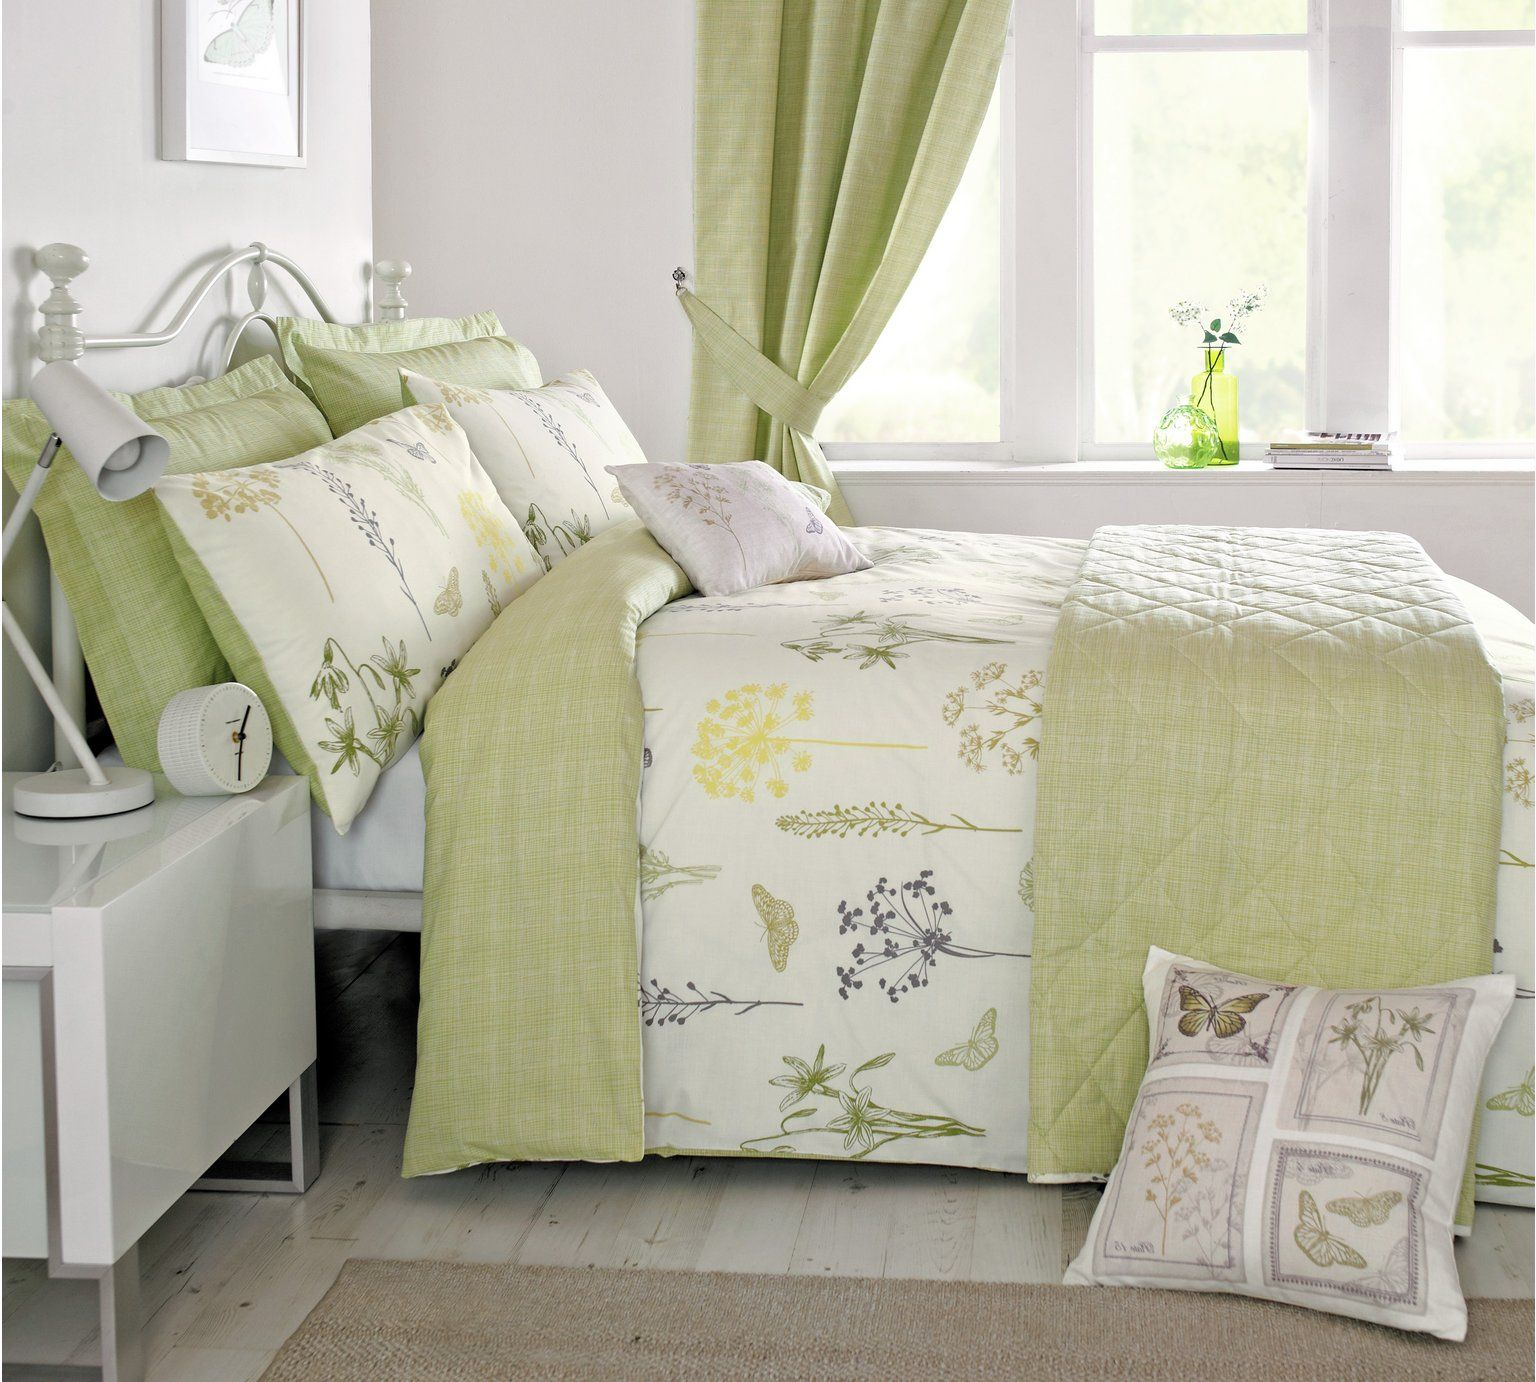 shams buy couette where b housse oreillers collection cache de ton avec to cover pin a with duvet